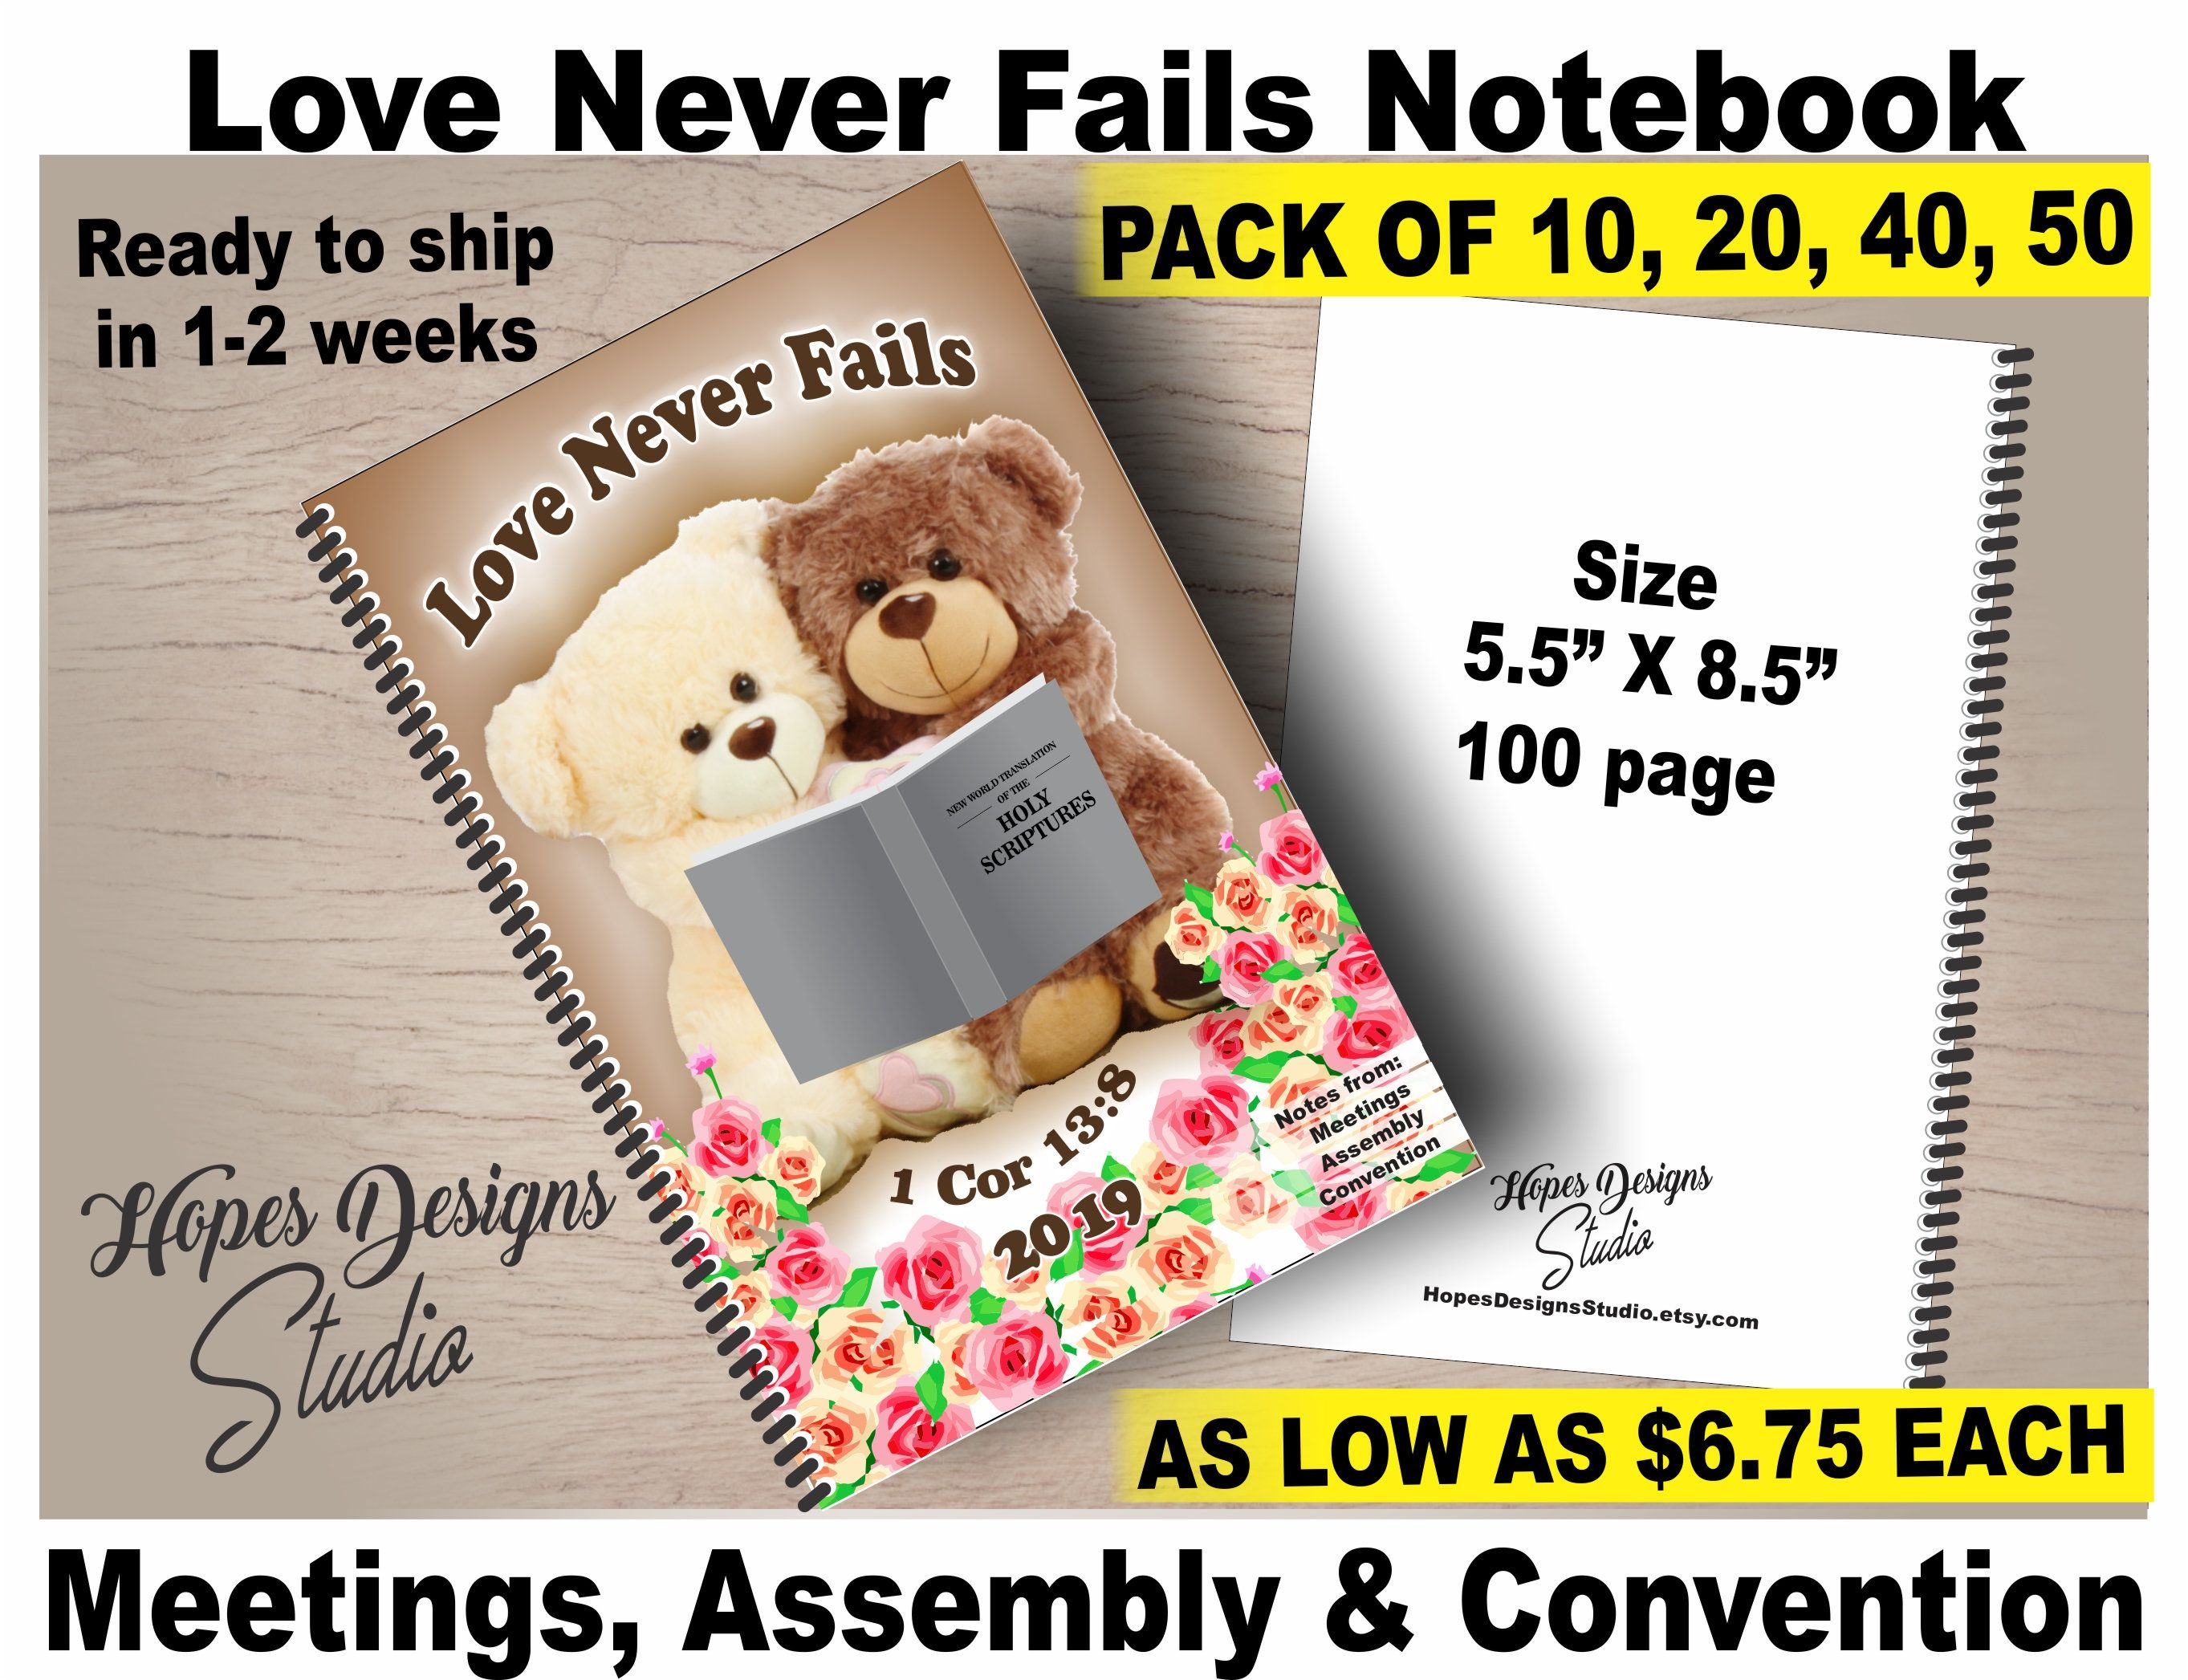 JW gifts/ Love Never Fails notebook/ International Convention/jw org